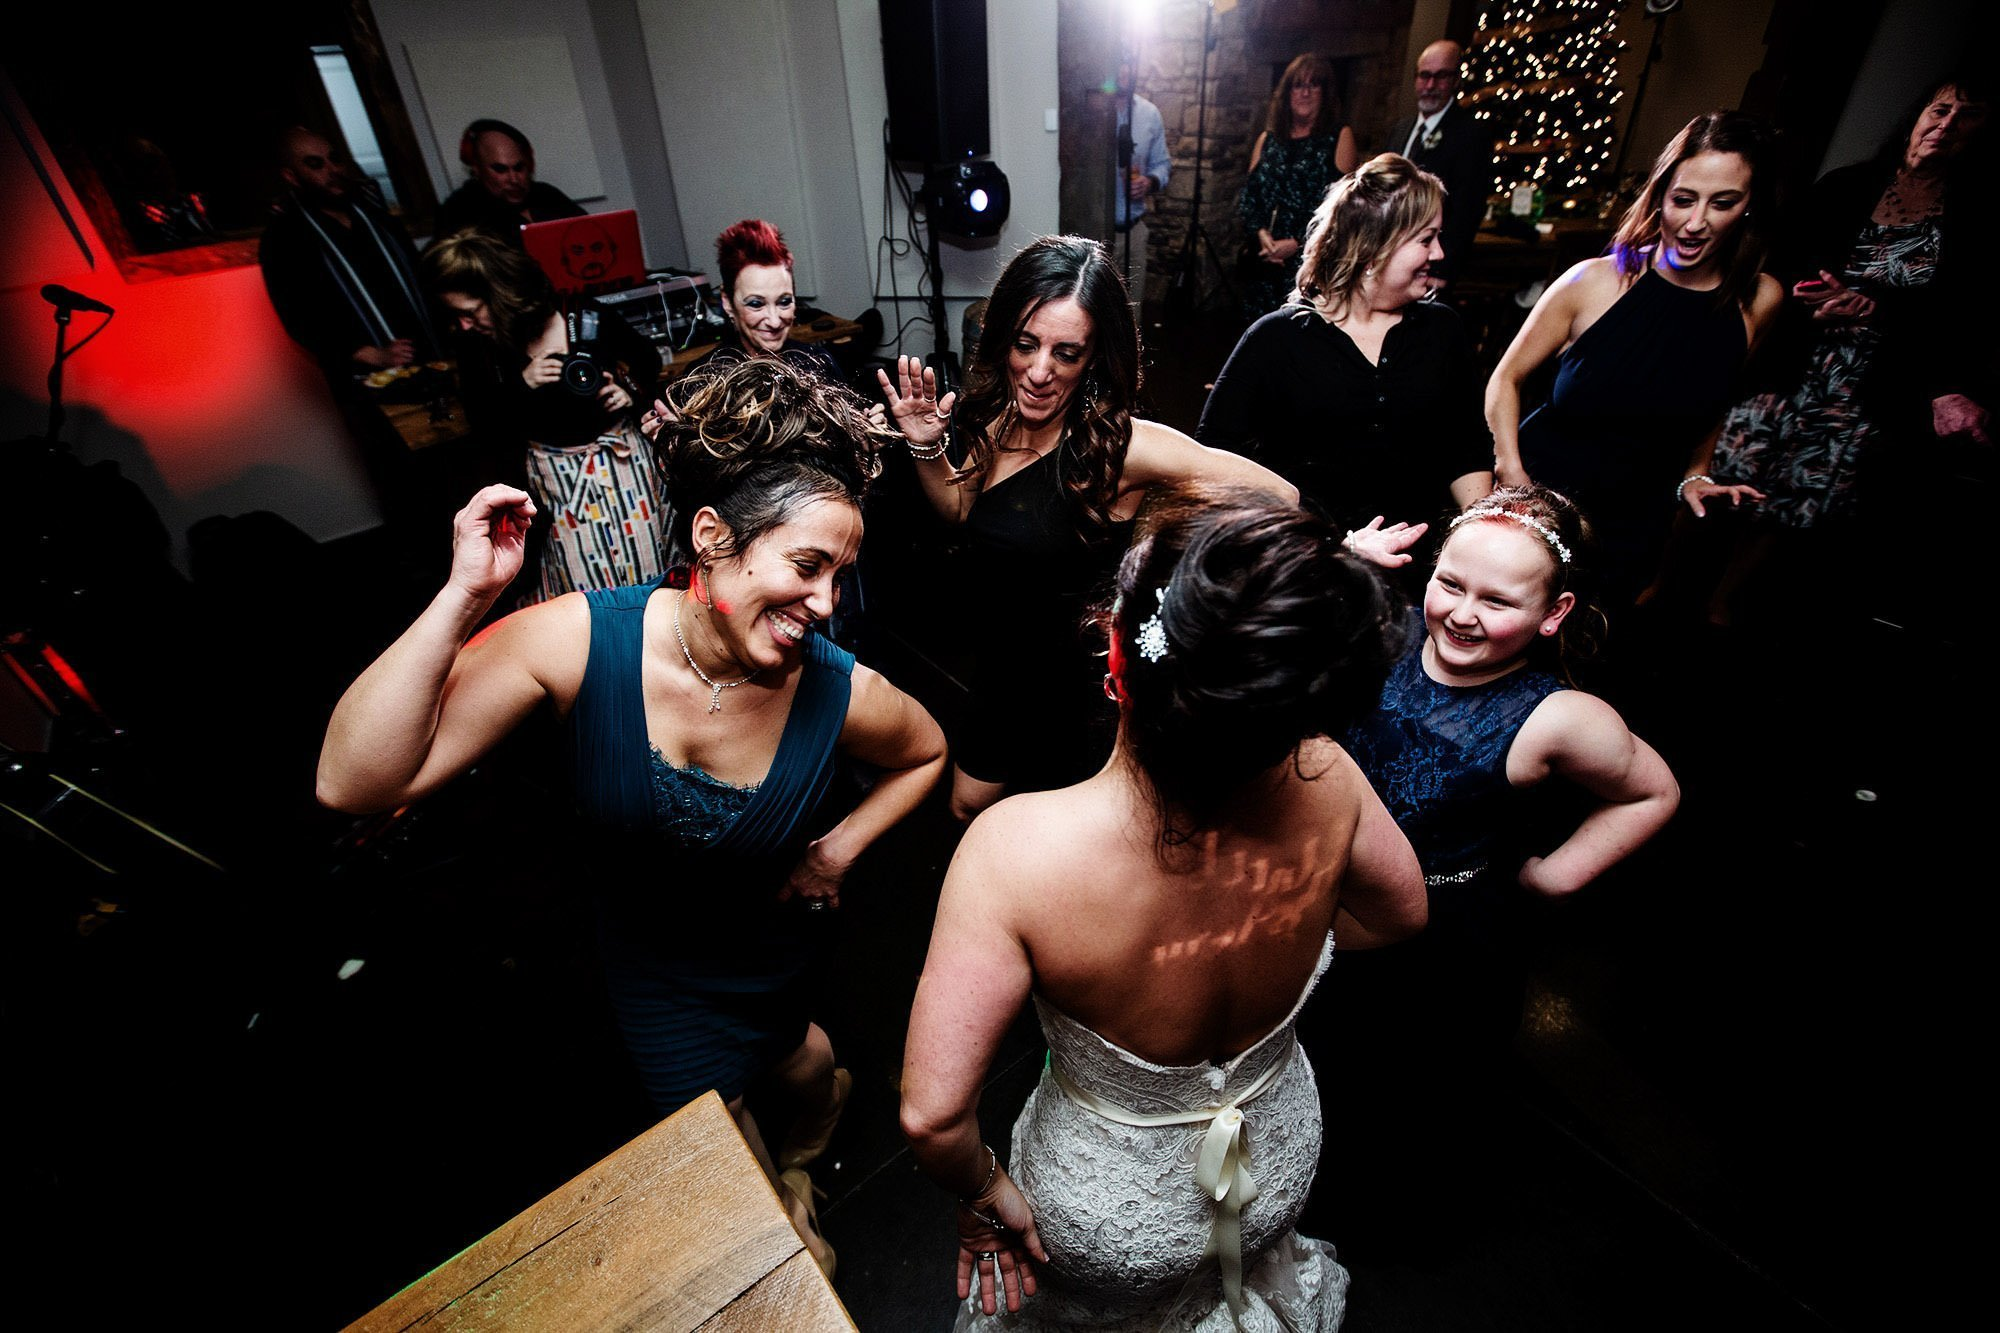 The bride dances with her guests during the Silver Oak Mystic wedding reception.